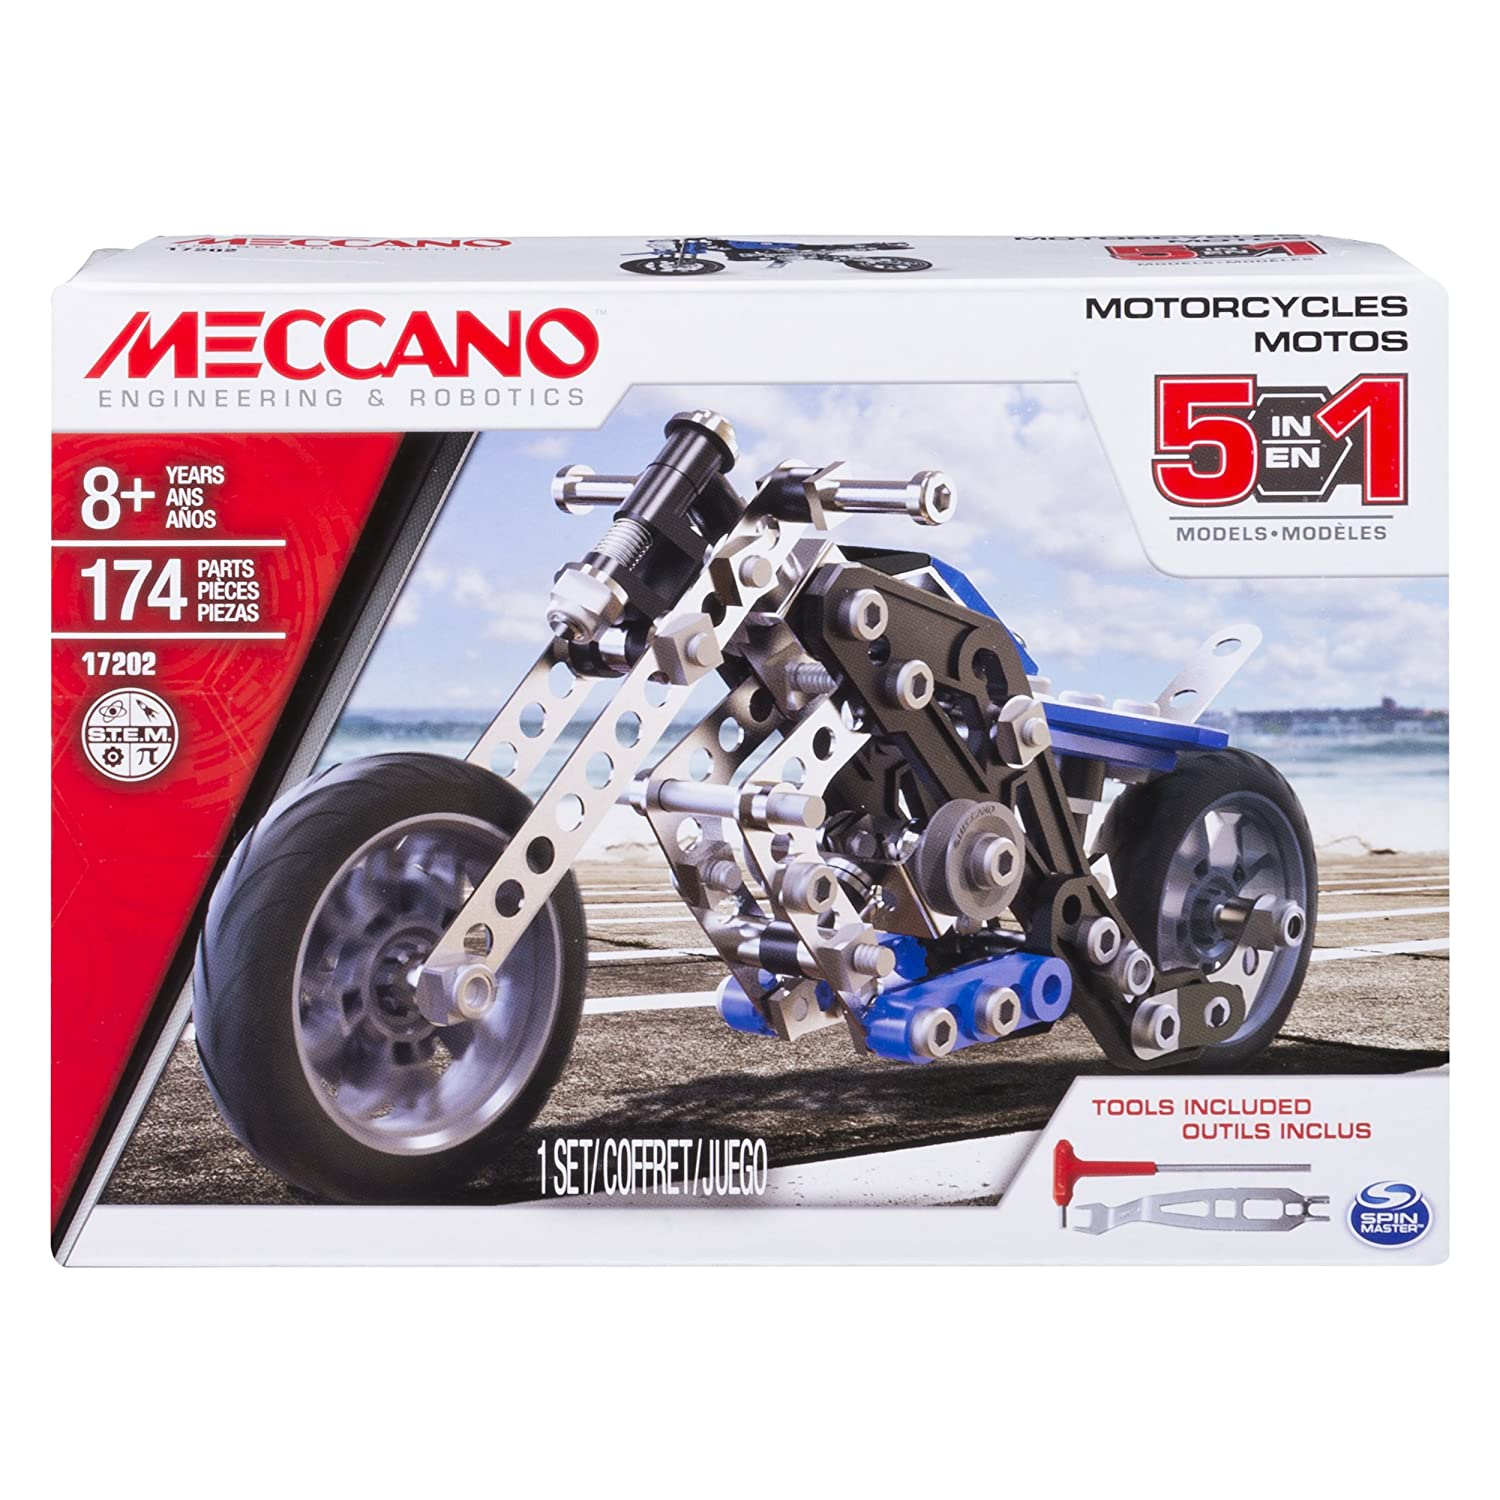 MECCANO in Motorcycles Construction Set